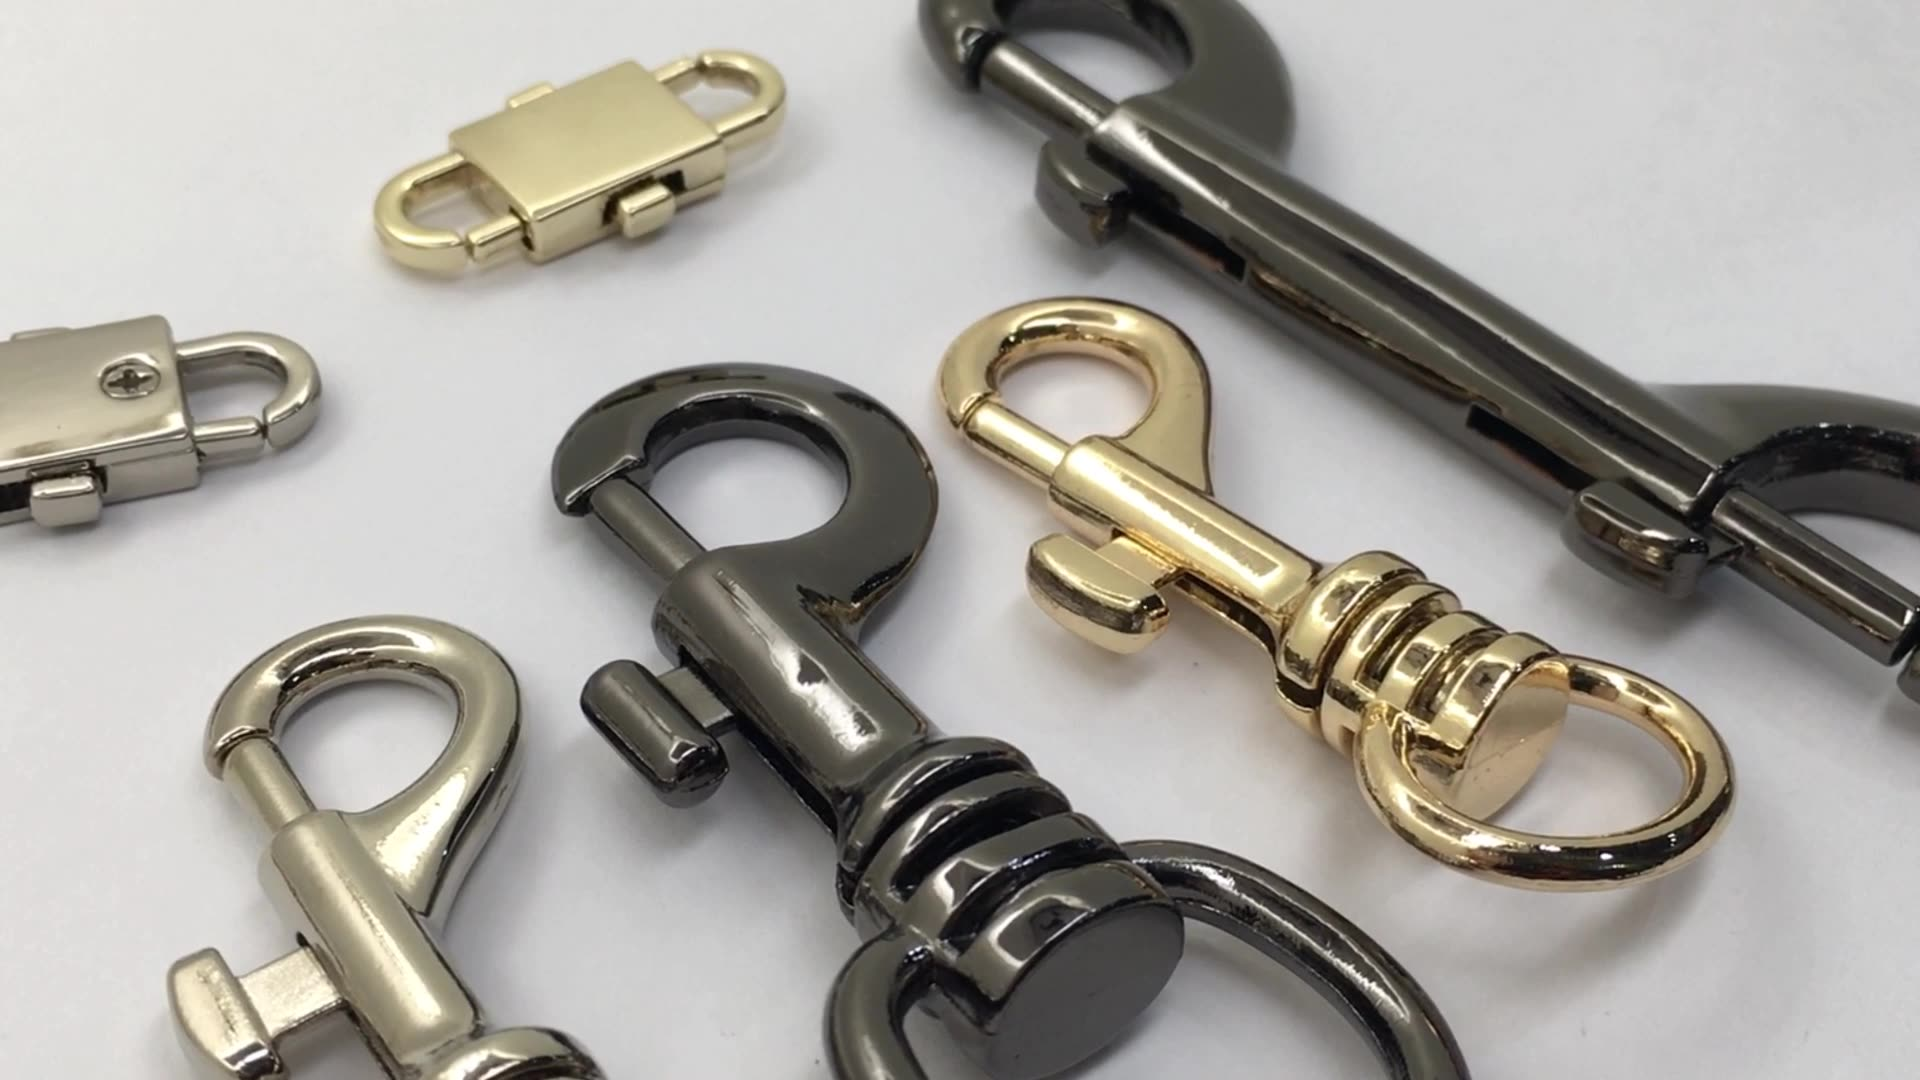 Bag Hanger Connector Cap Strap Bell Rope Swivel Clasp Screw Metal Snap Hook With Cord End Stopper